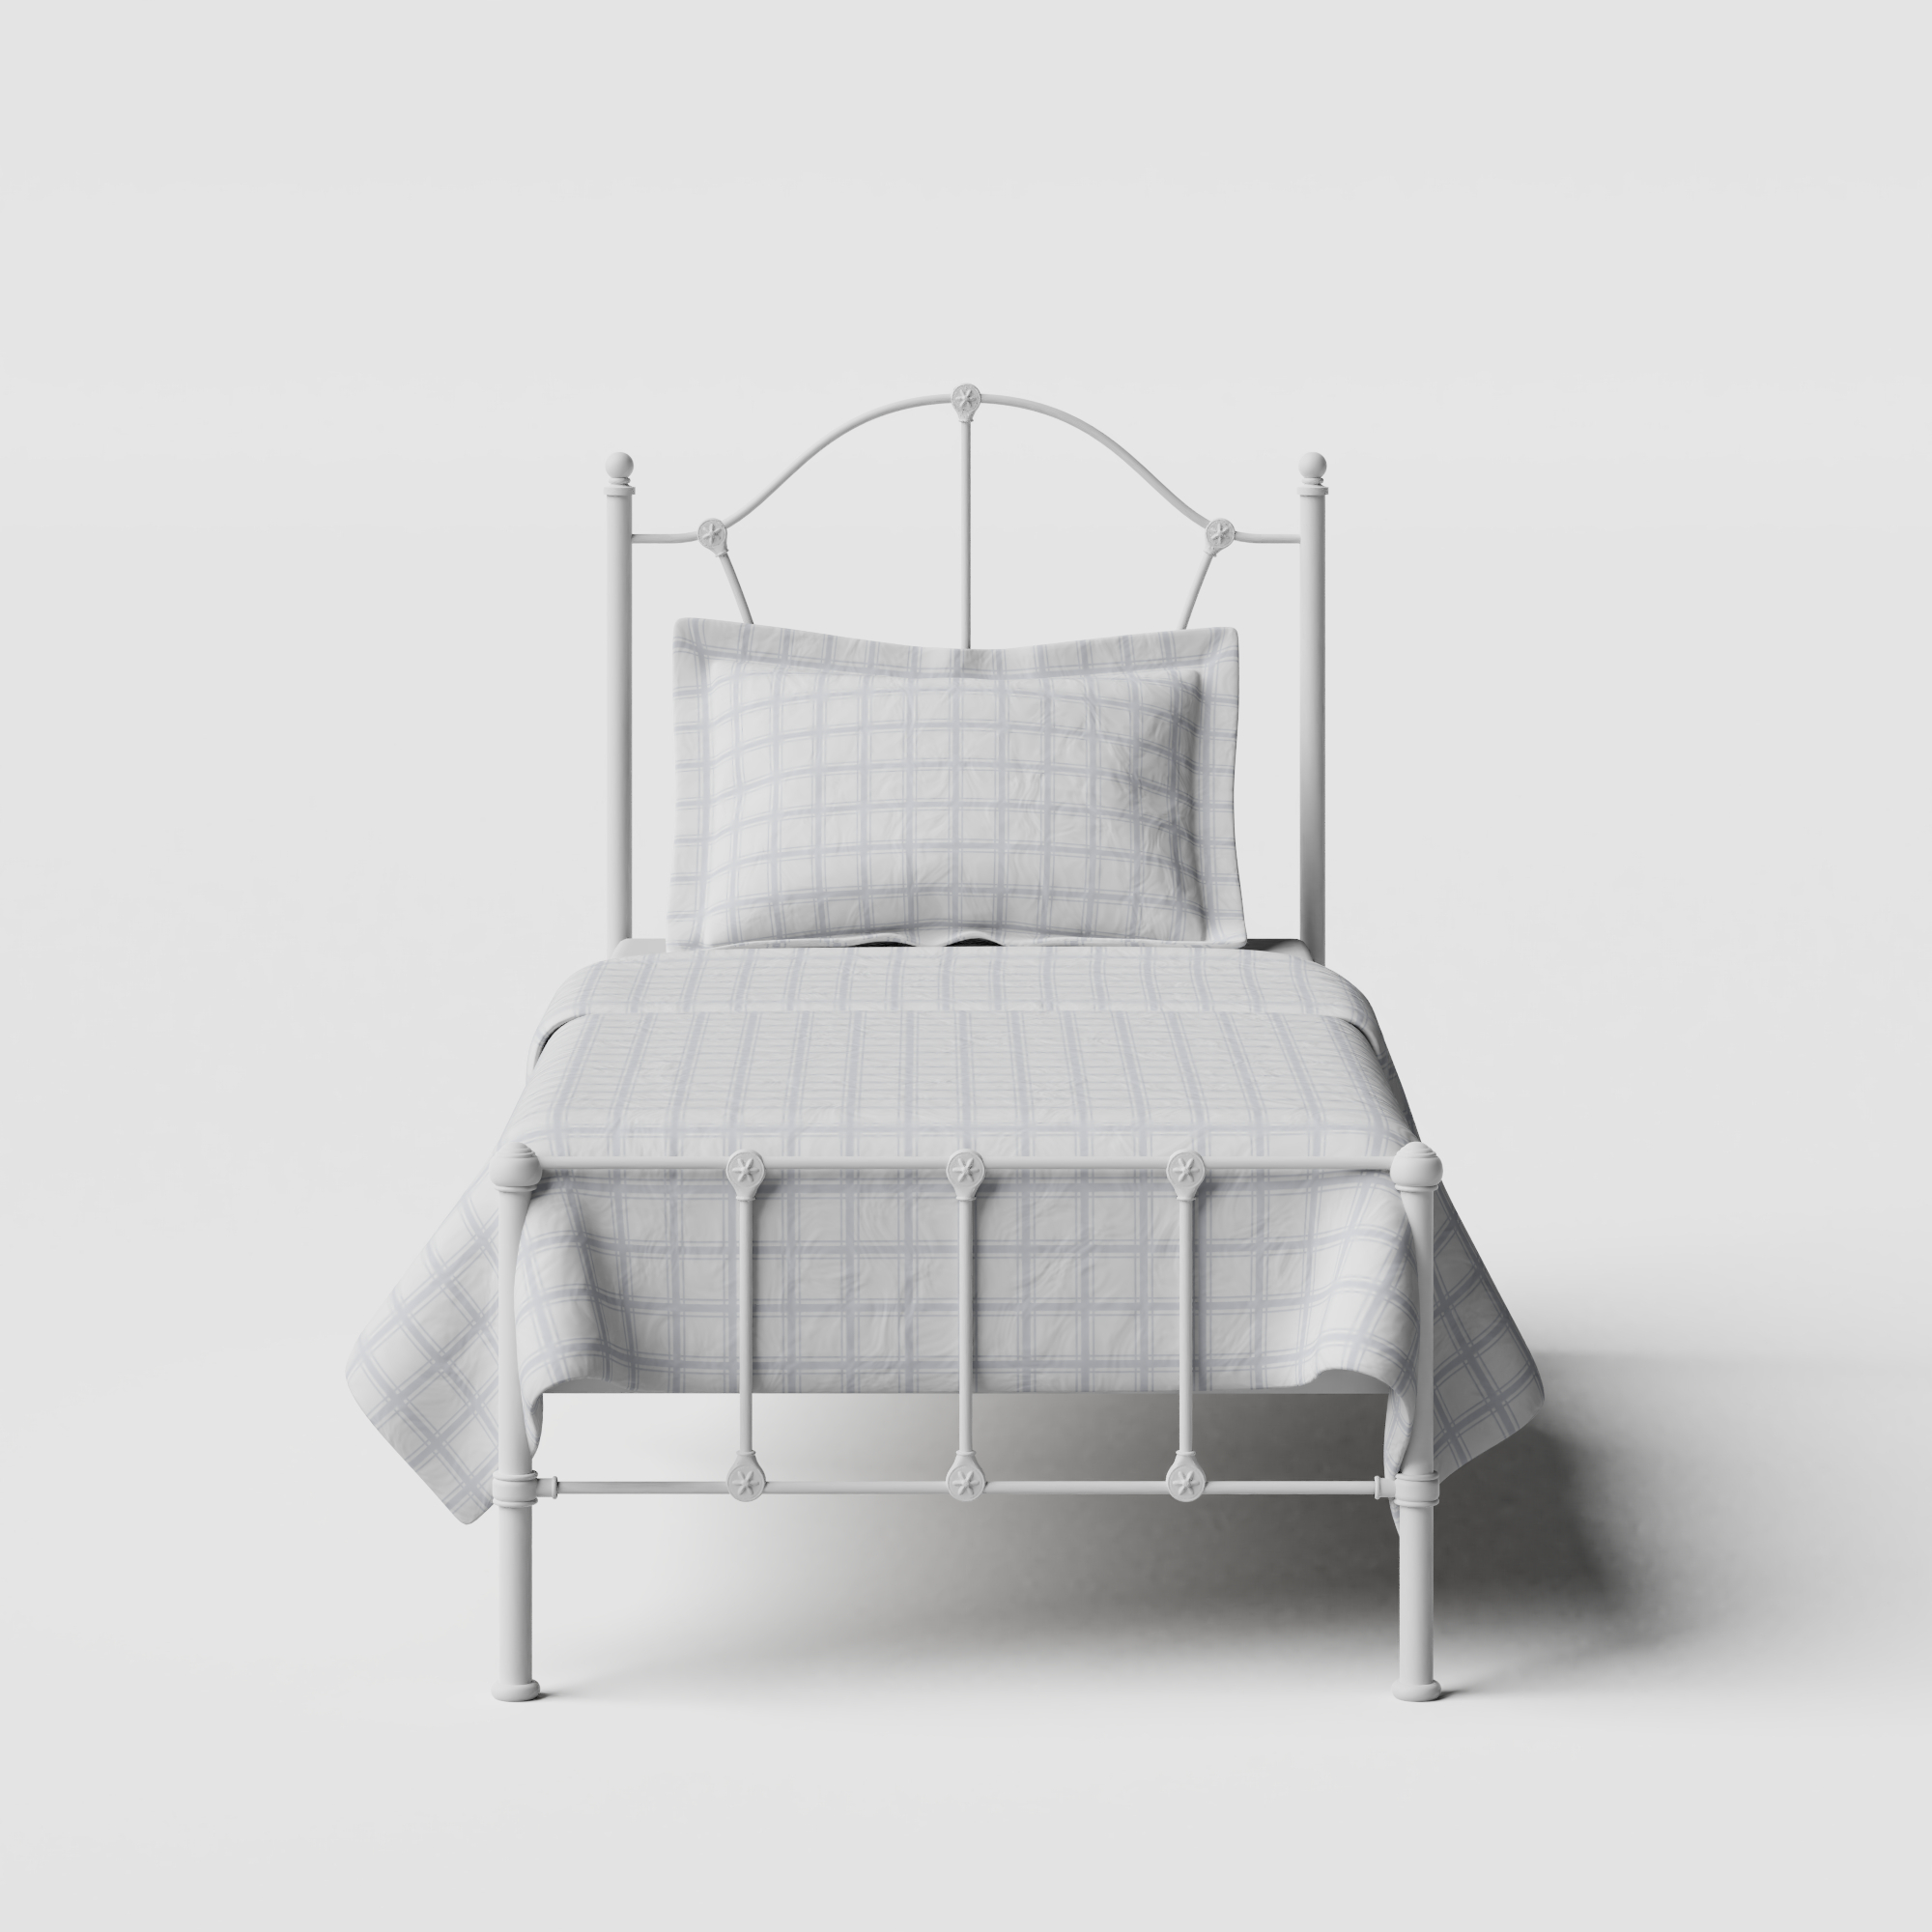 Claudia iron/metal single bed in white